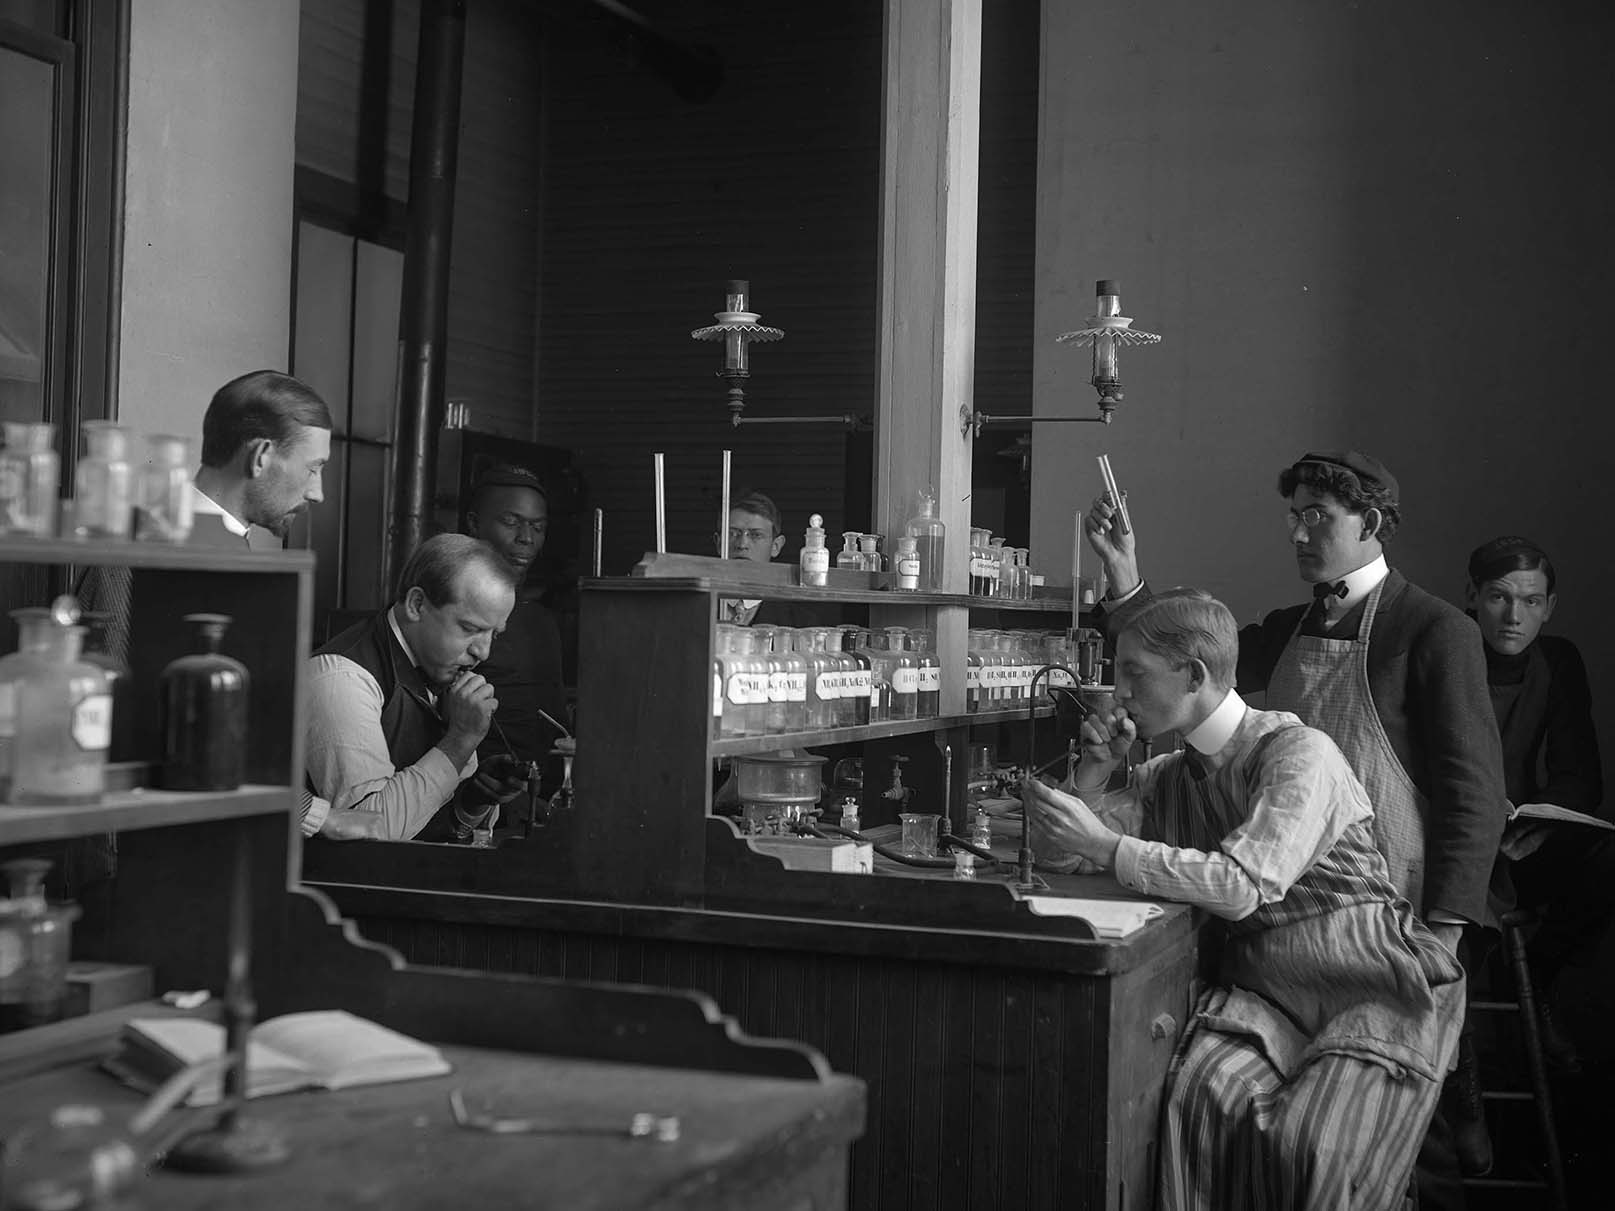 Students in chemistry laboratory, 1904